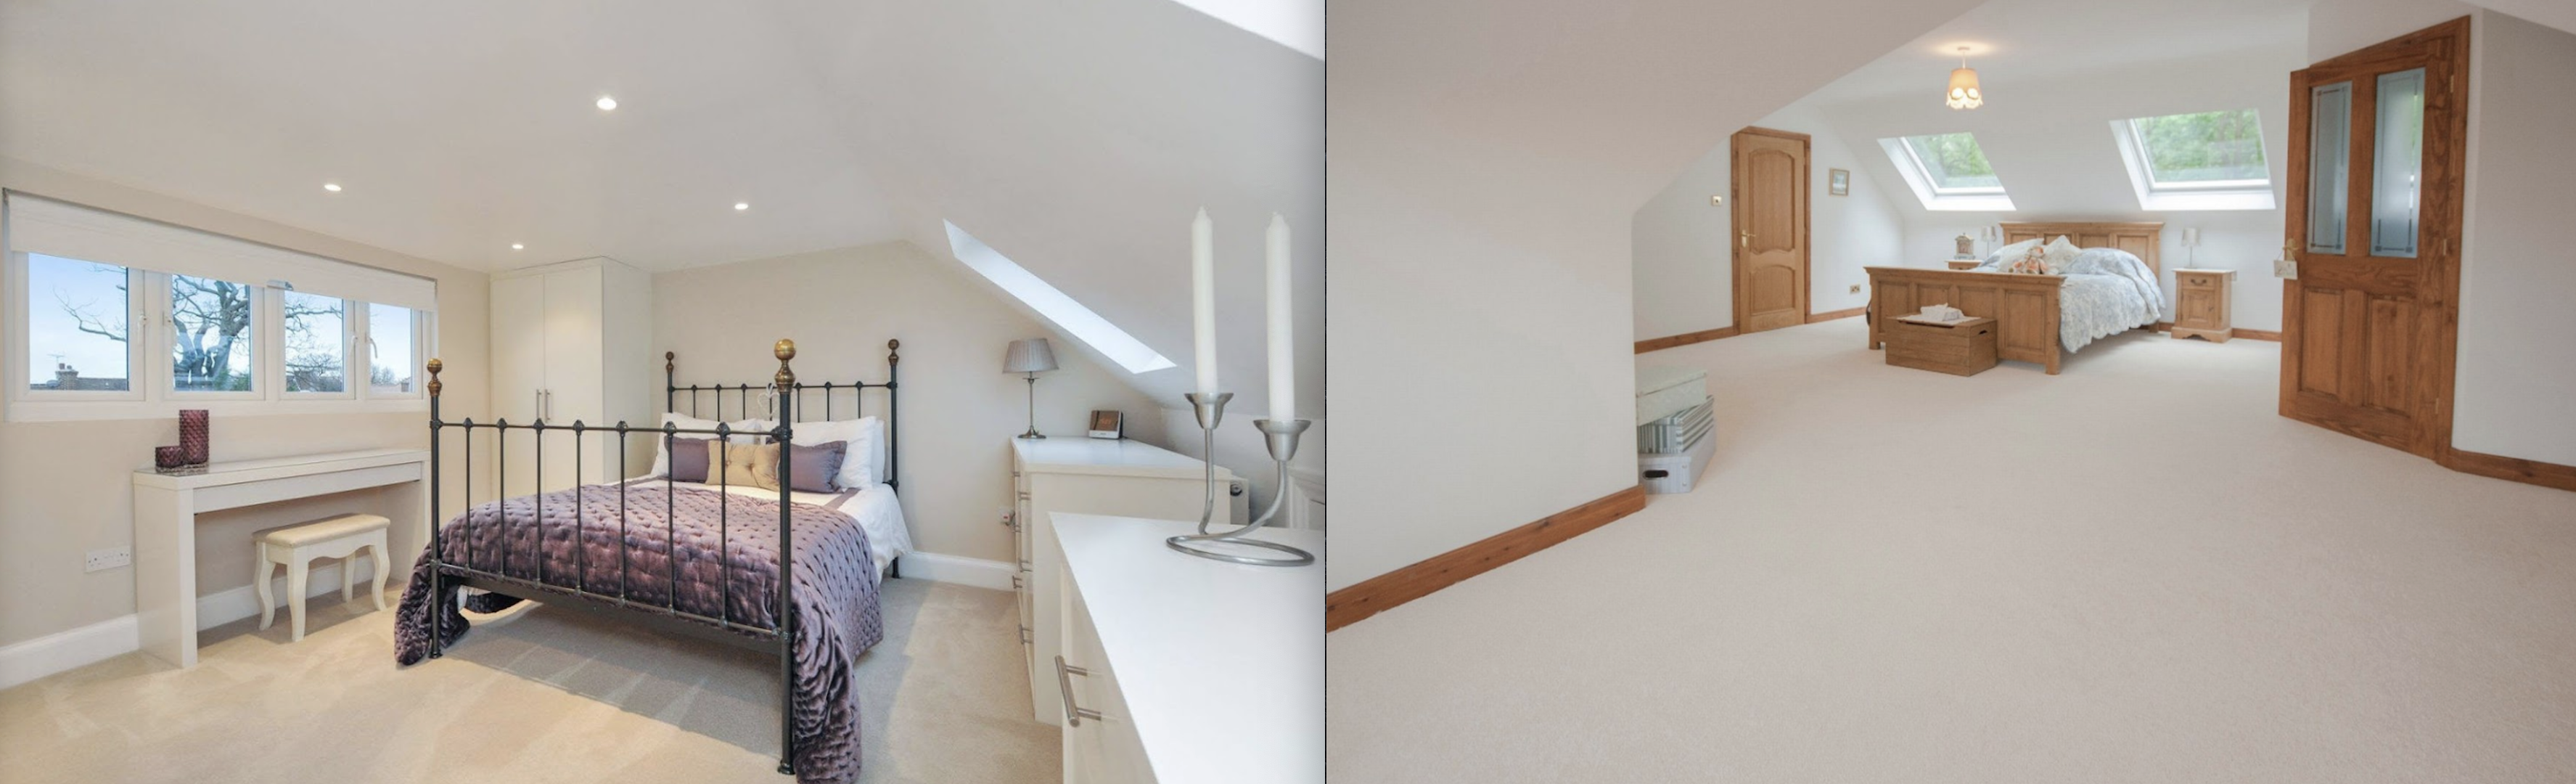 Beautiful Dormer loft conversion in Warton, creating a new master bedroom with private bathroom, walk in wardrobe and stunning new oak staircase with Velux polyurethane SK06 GPU windows.